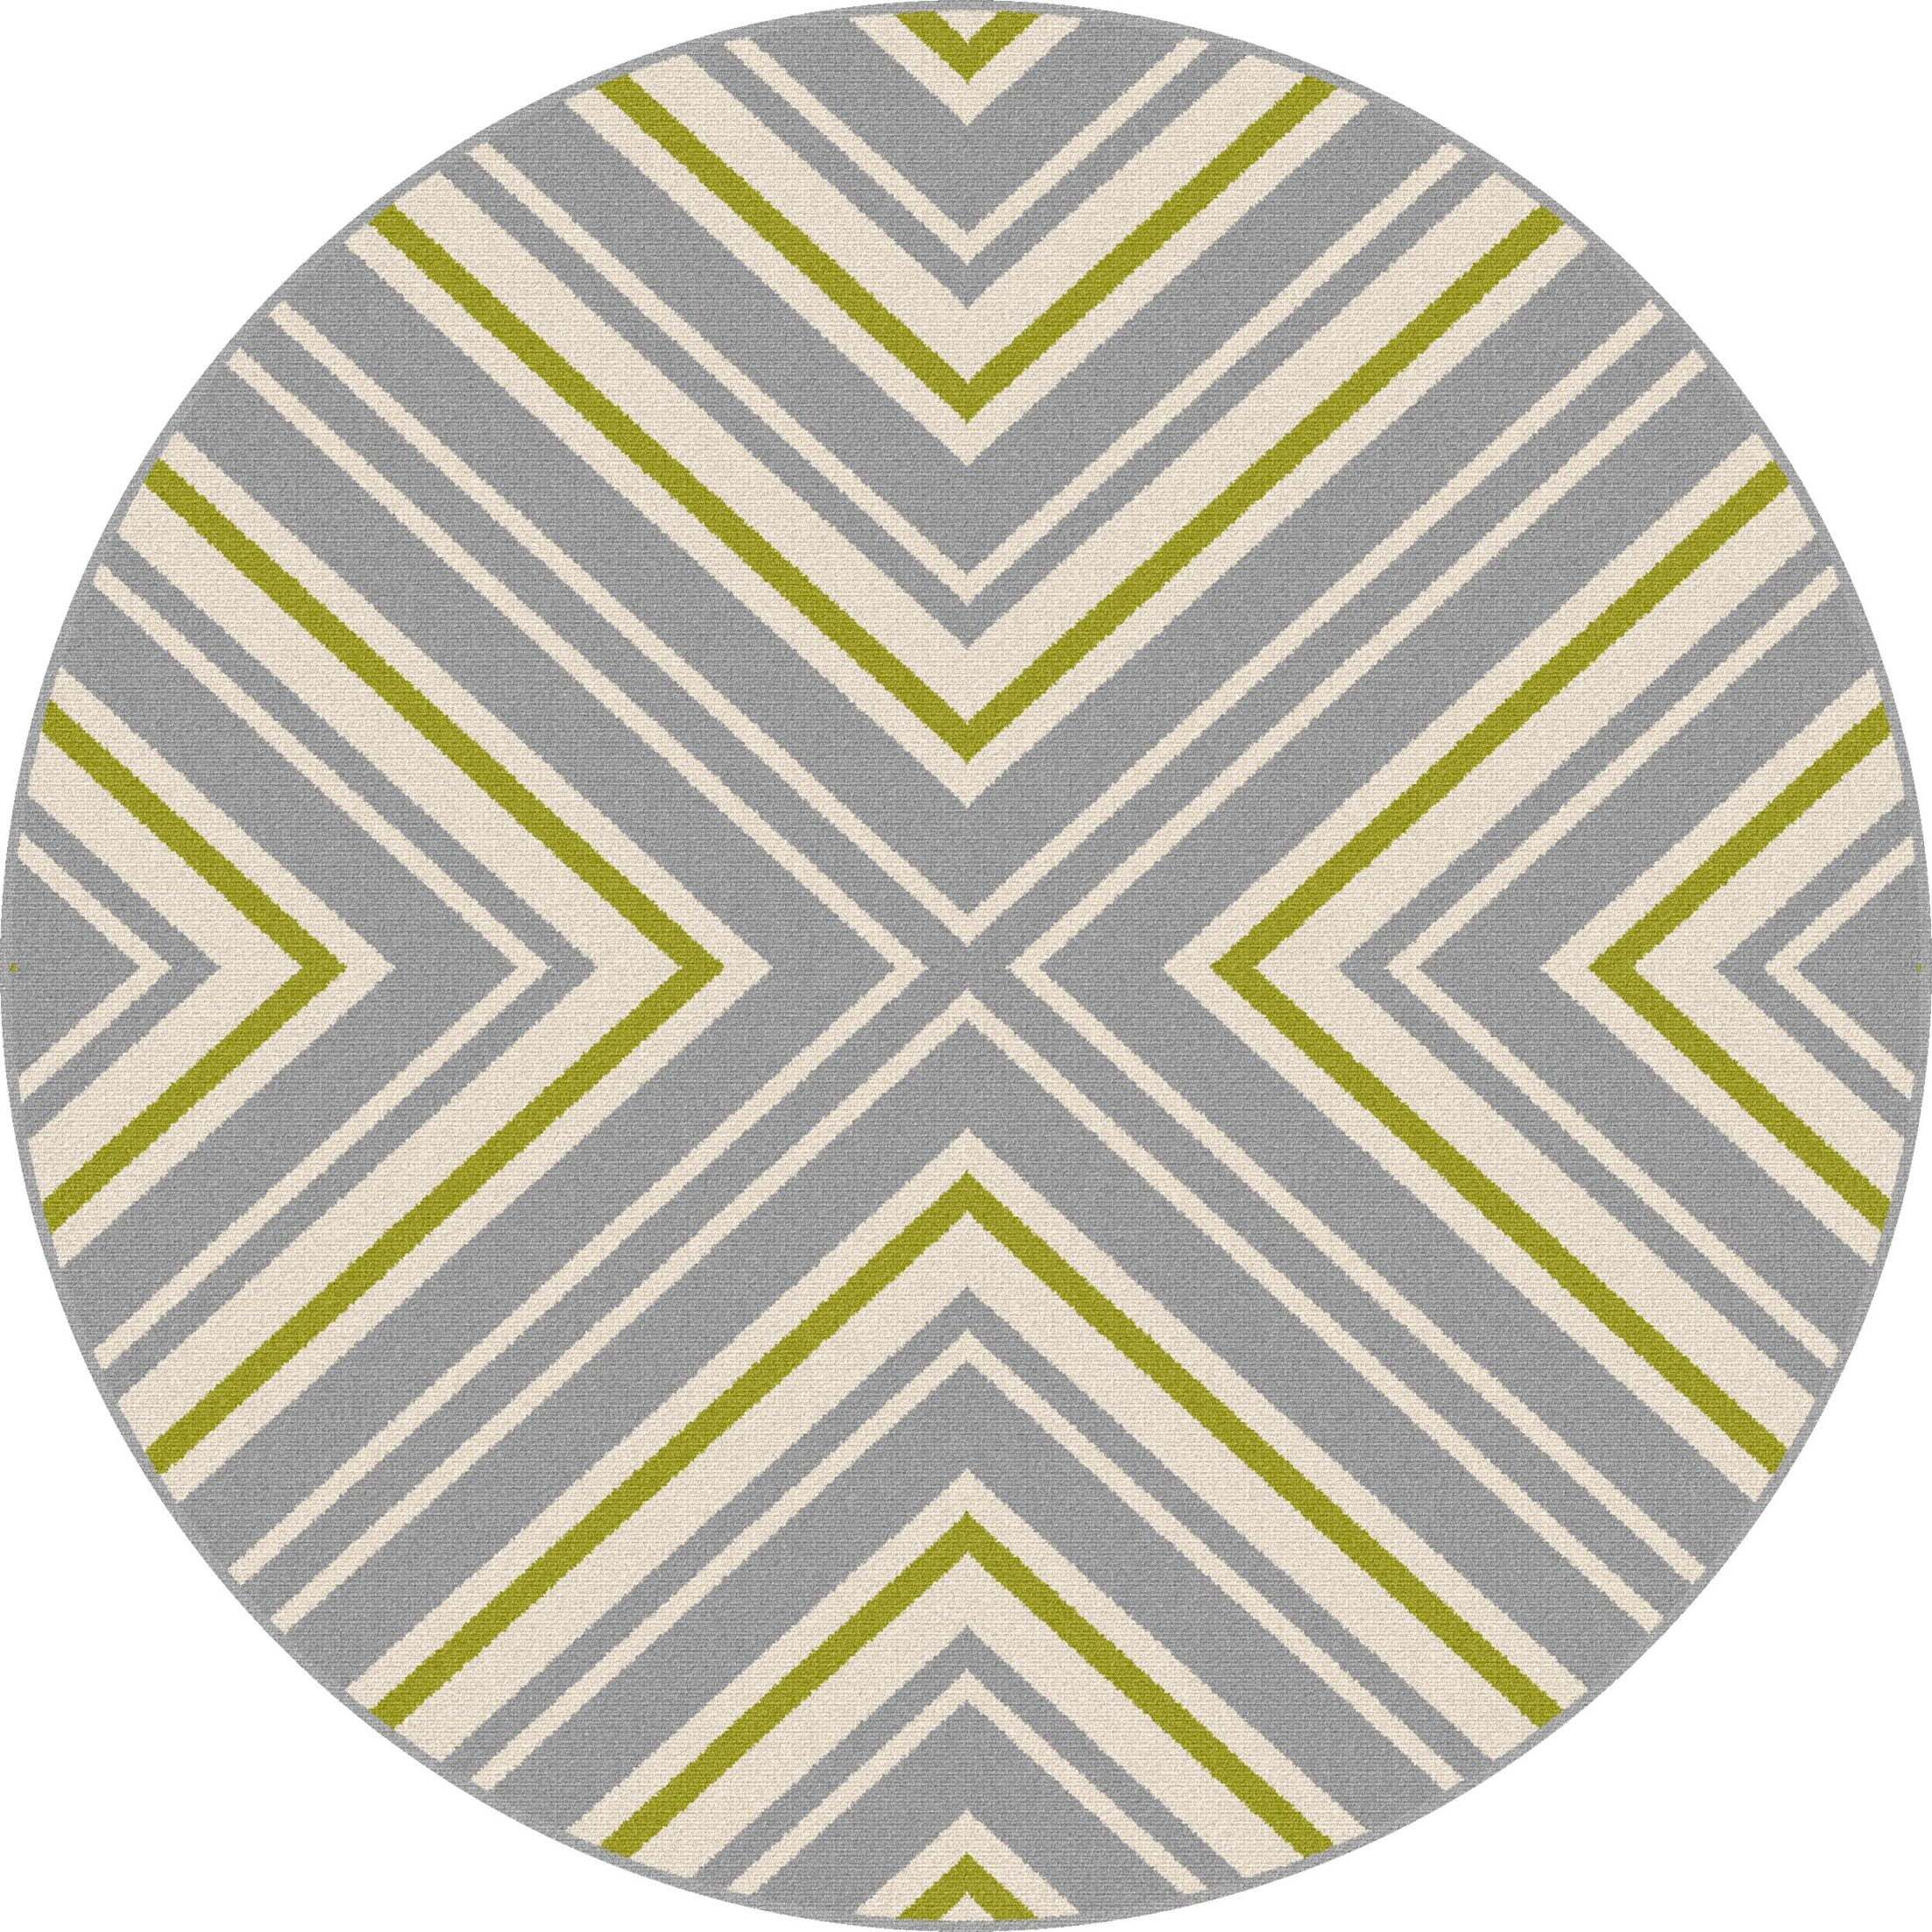 Martinique Gray Area Rug Rug Size: 7'10'' Round